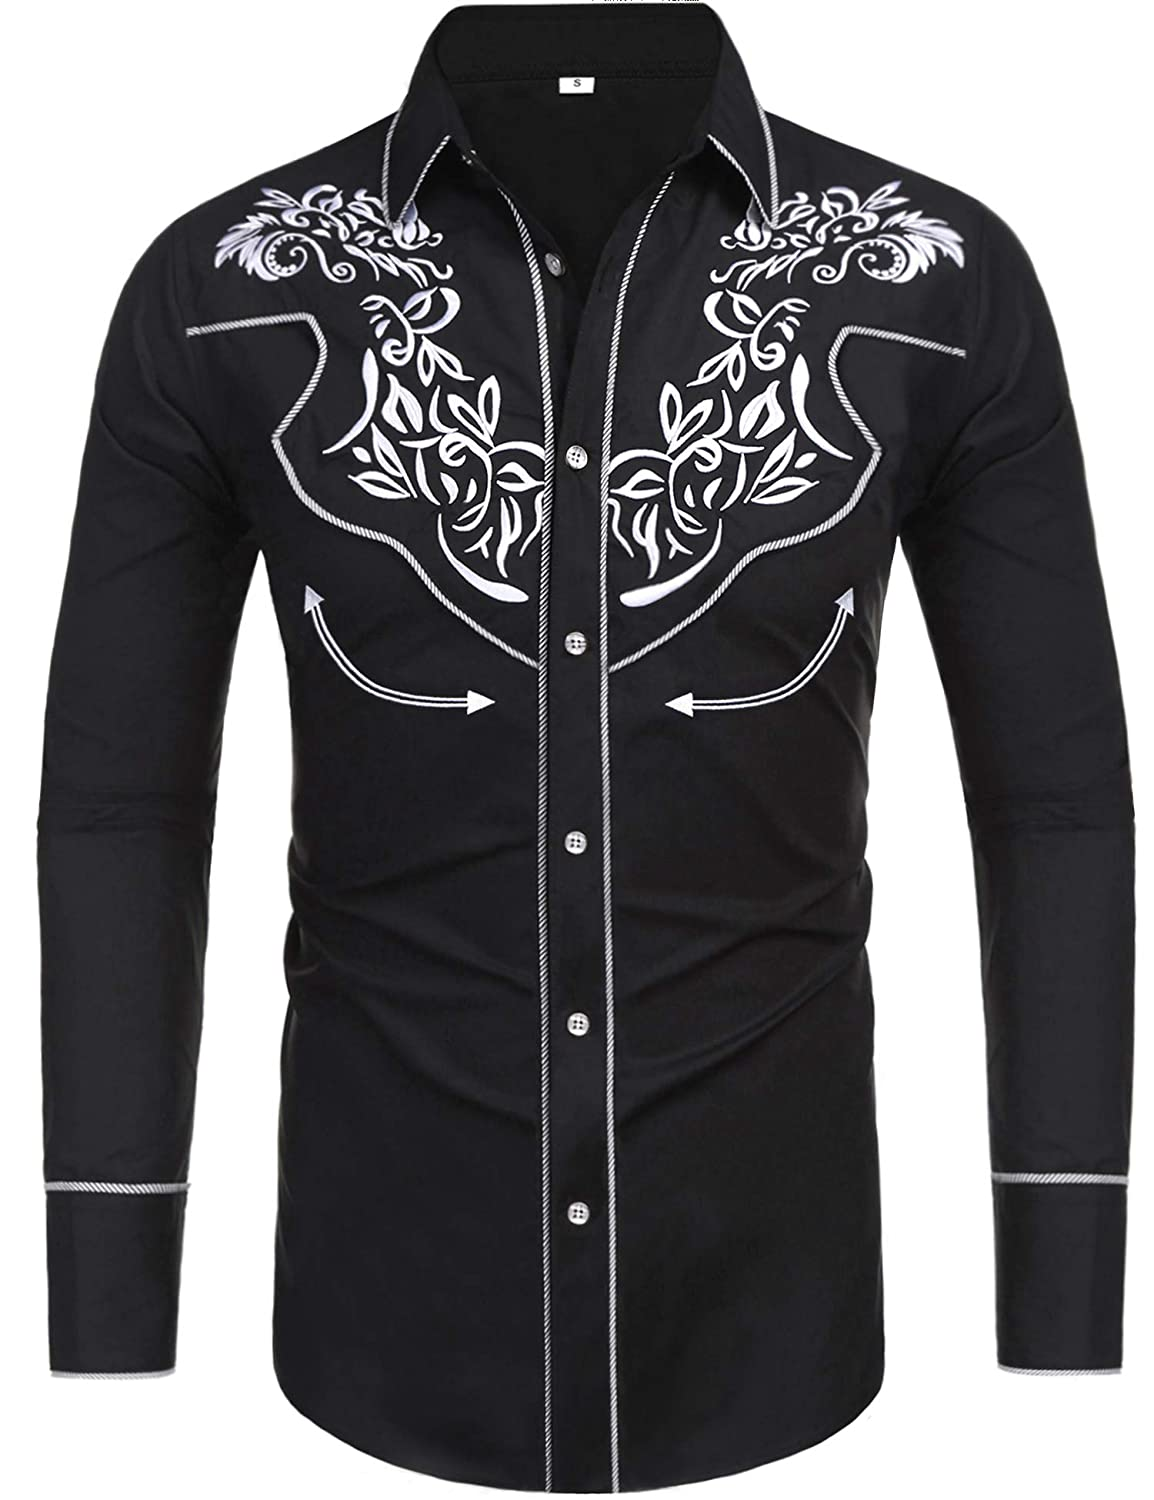 3b7cfee2 Daupanzees Men's Long Sleeve Embroidered Shirts Slim Fit Casual Button Down  Shirt at Amazon Men's Clothing store: